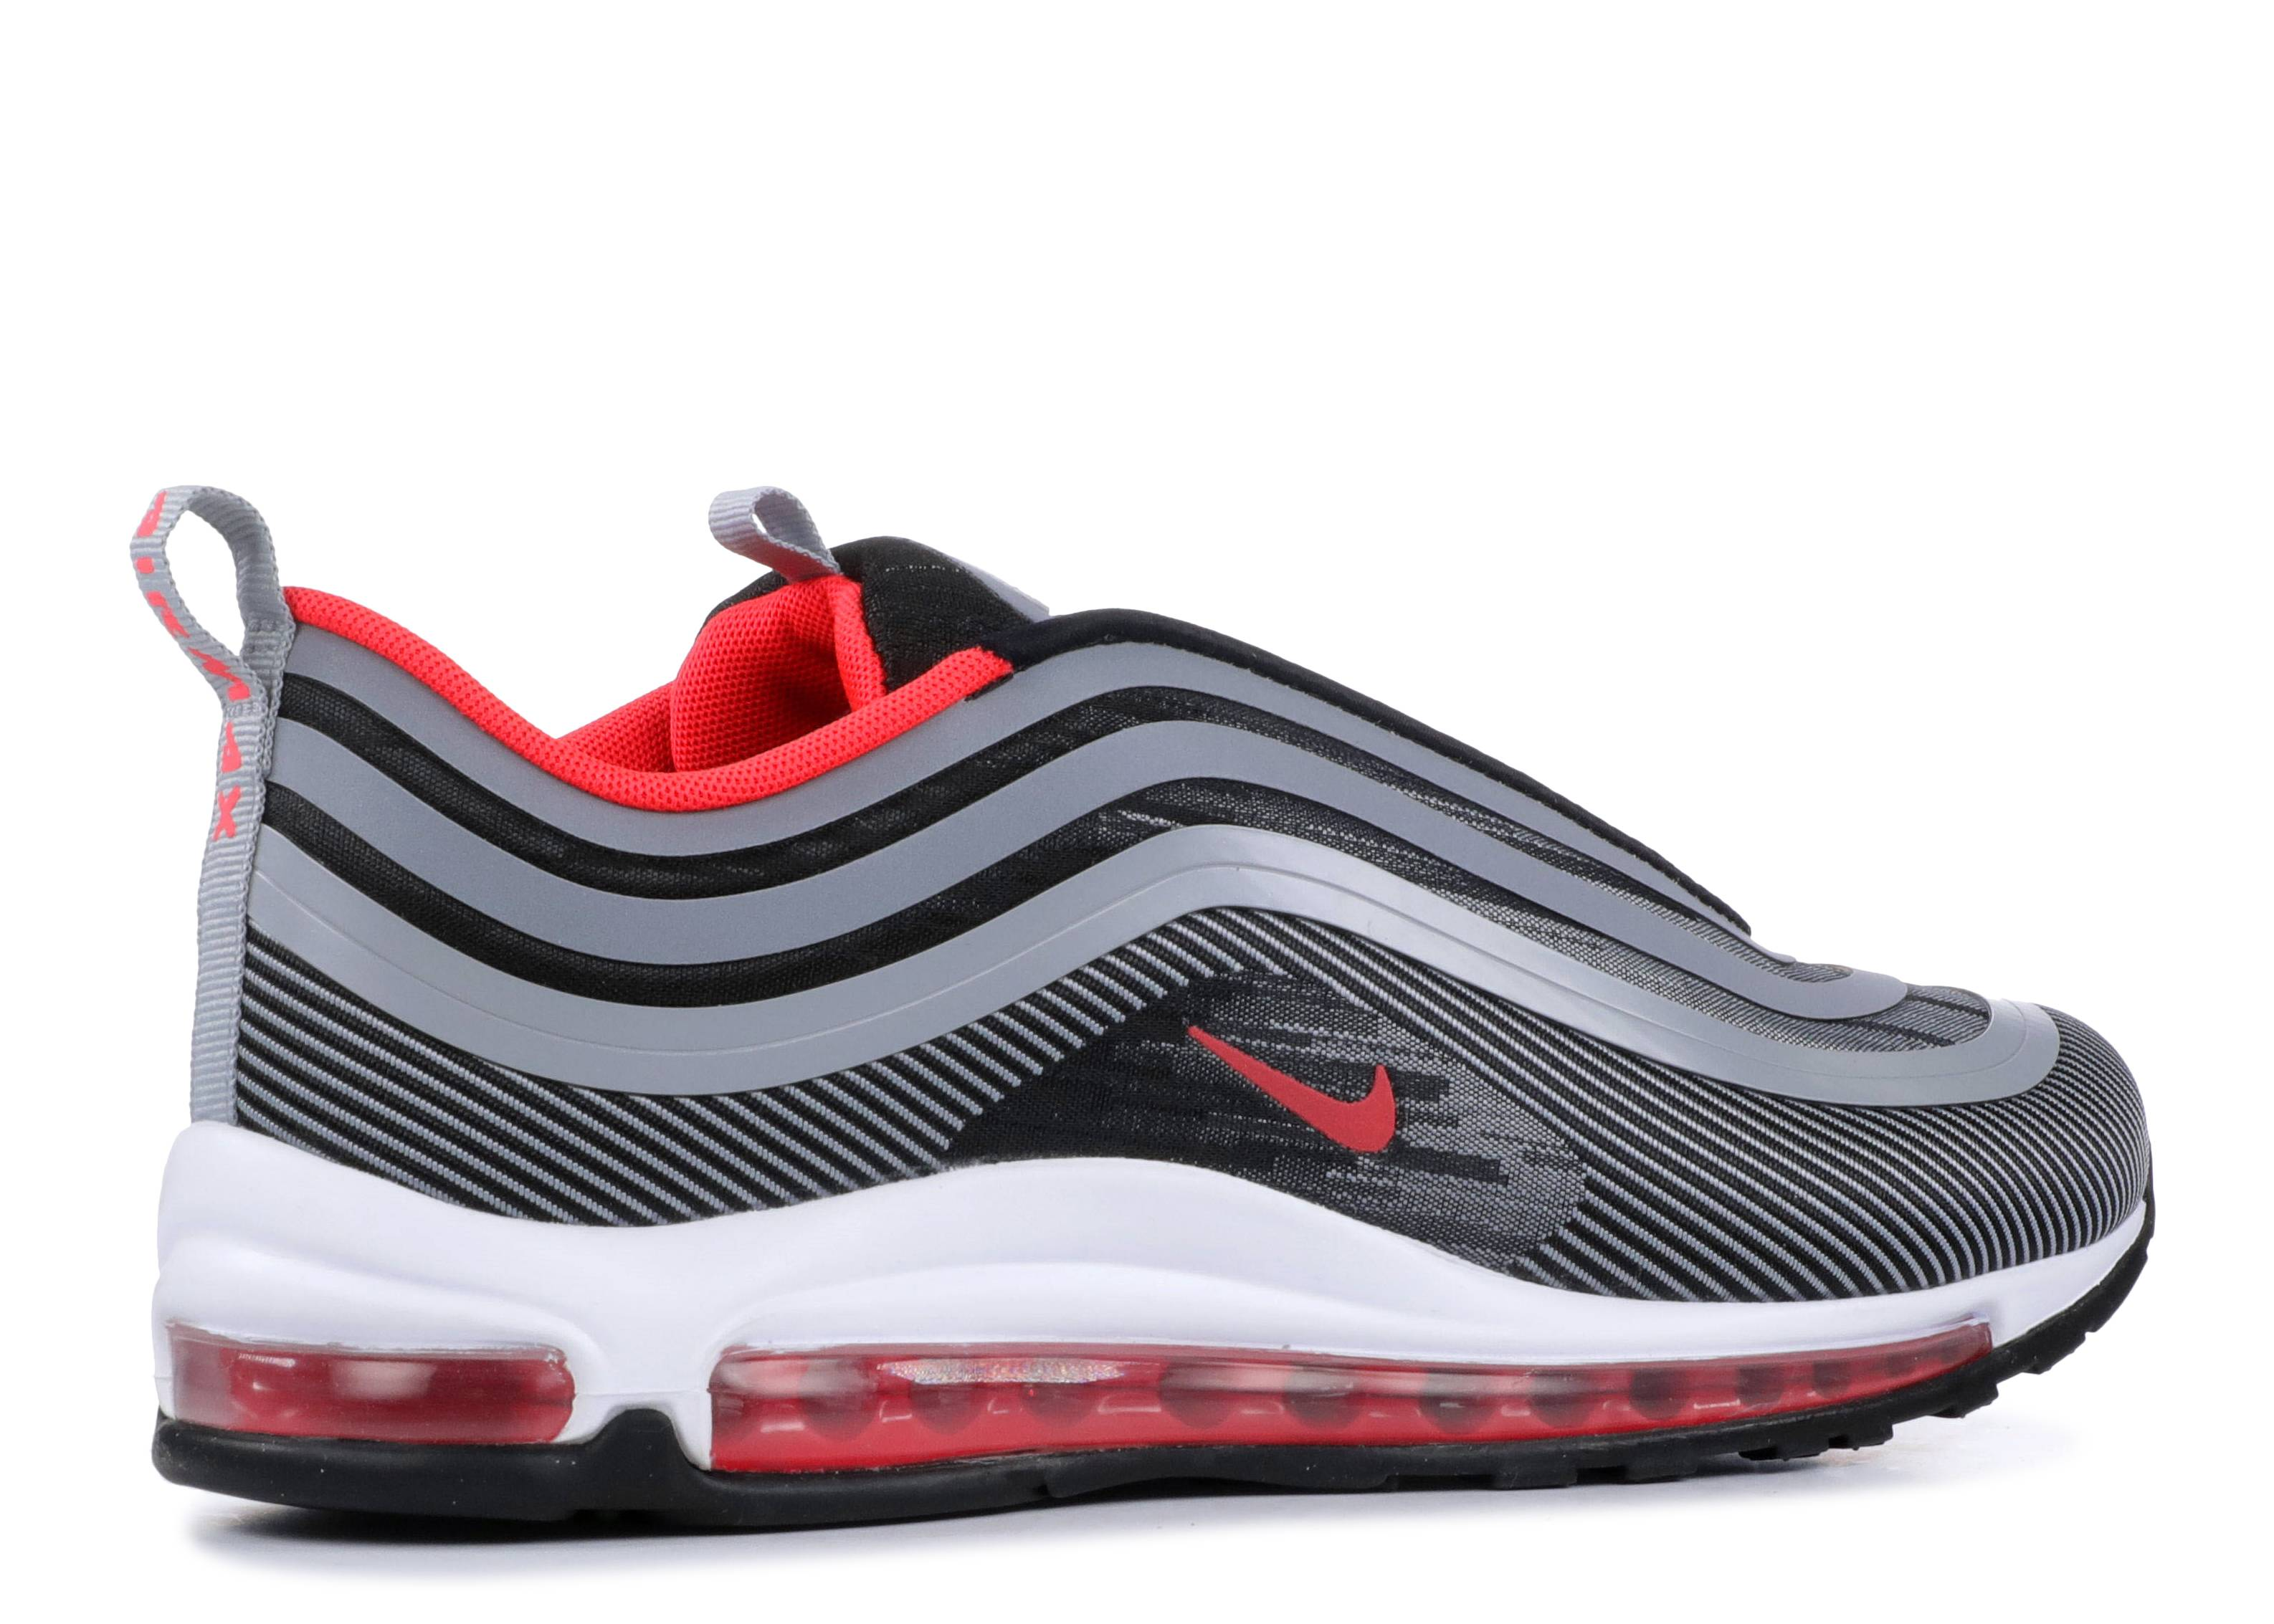 new zealand air max 97 ul red 0c6a2 af685